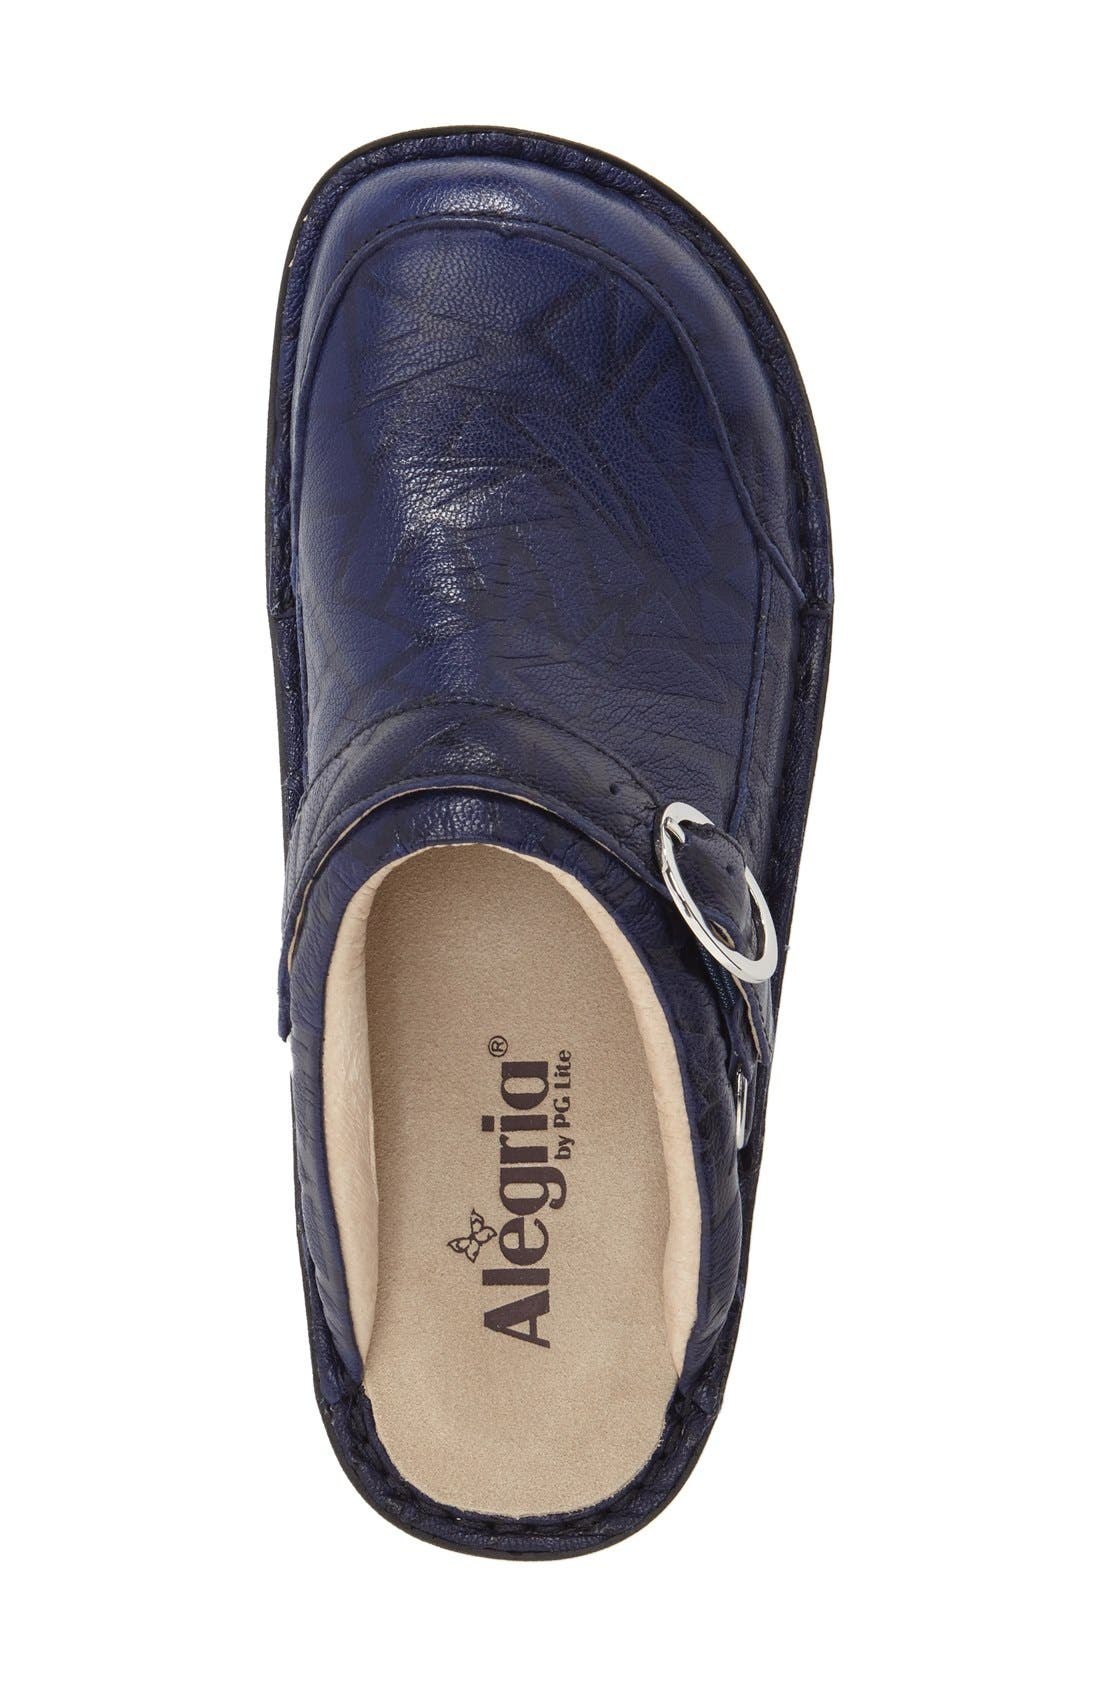 Alternate Image 3  - Alegria Seville Water Resistant Clog (Women)